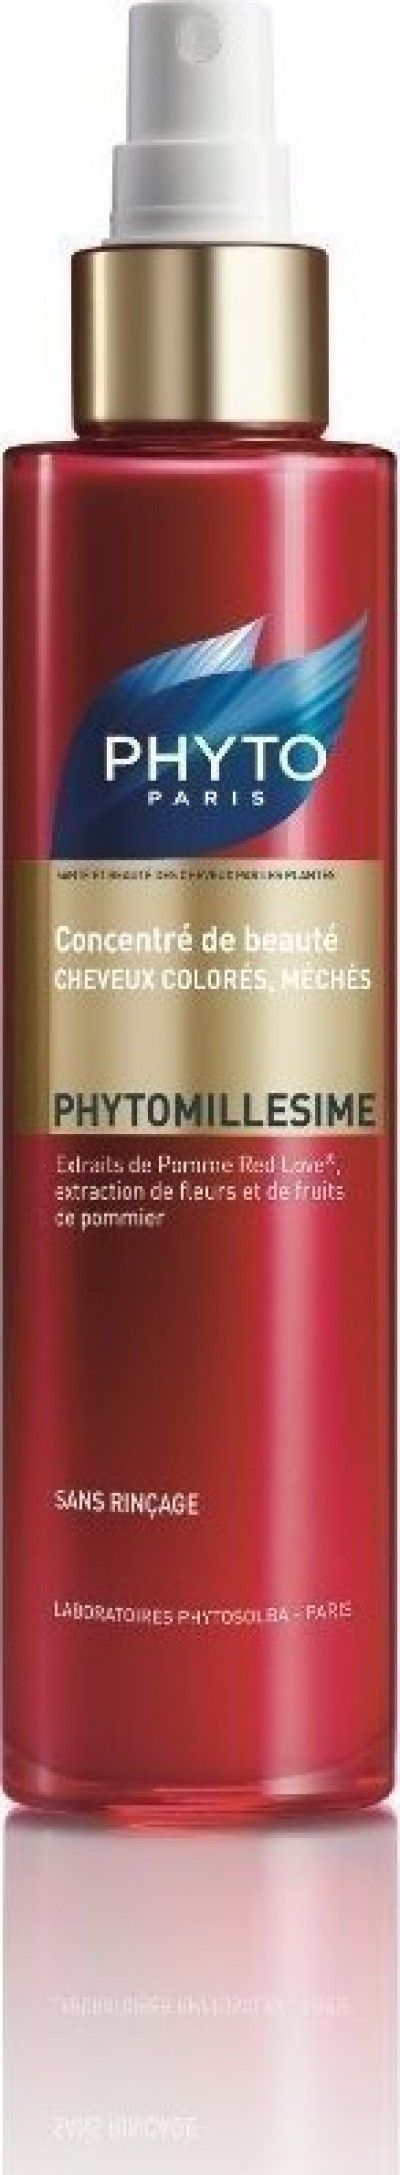 PHYTO PHYTOMILLESIME CONCENTRE DE BEAUTE 150ML